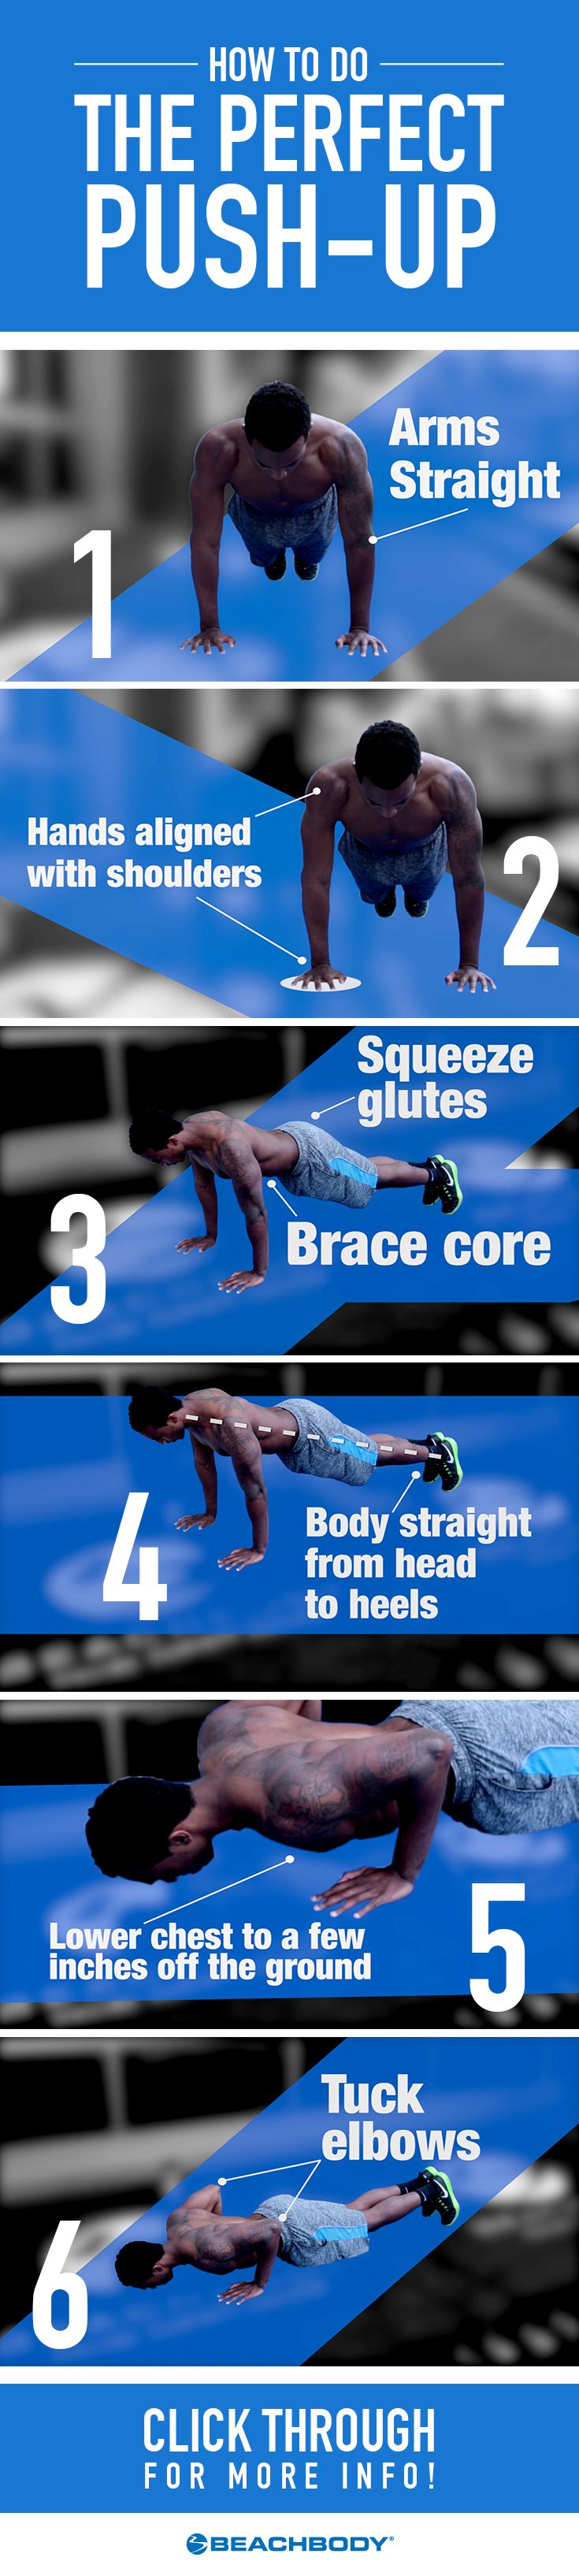 Few exercises command more muscle-building respect than the push-up, which is why everyone from soldiers to yogis perform it regularly. Here's how to perform it correctly to maximize effectiveness. // fitness // tips // arm workouts // how to do a push-up // Beachbody // BeachbodyBlog.com